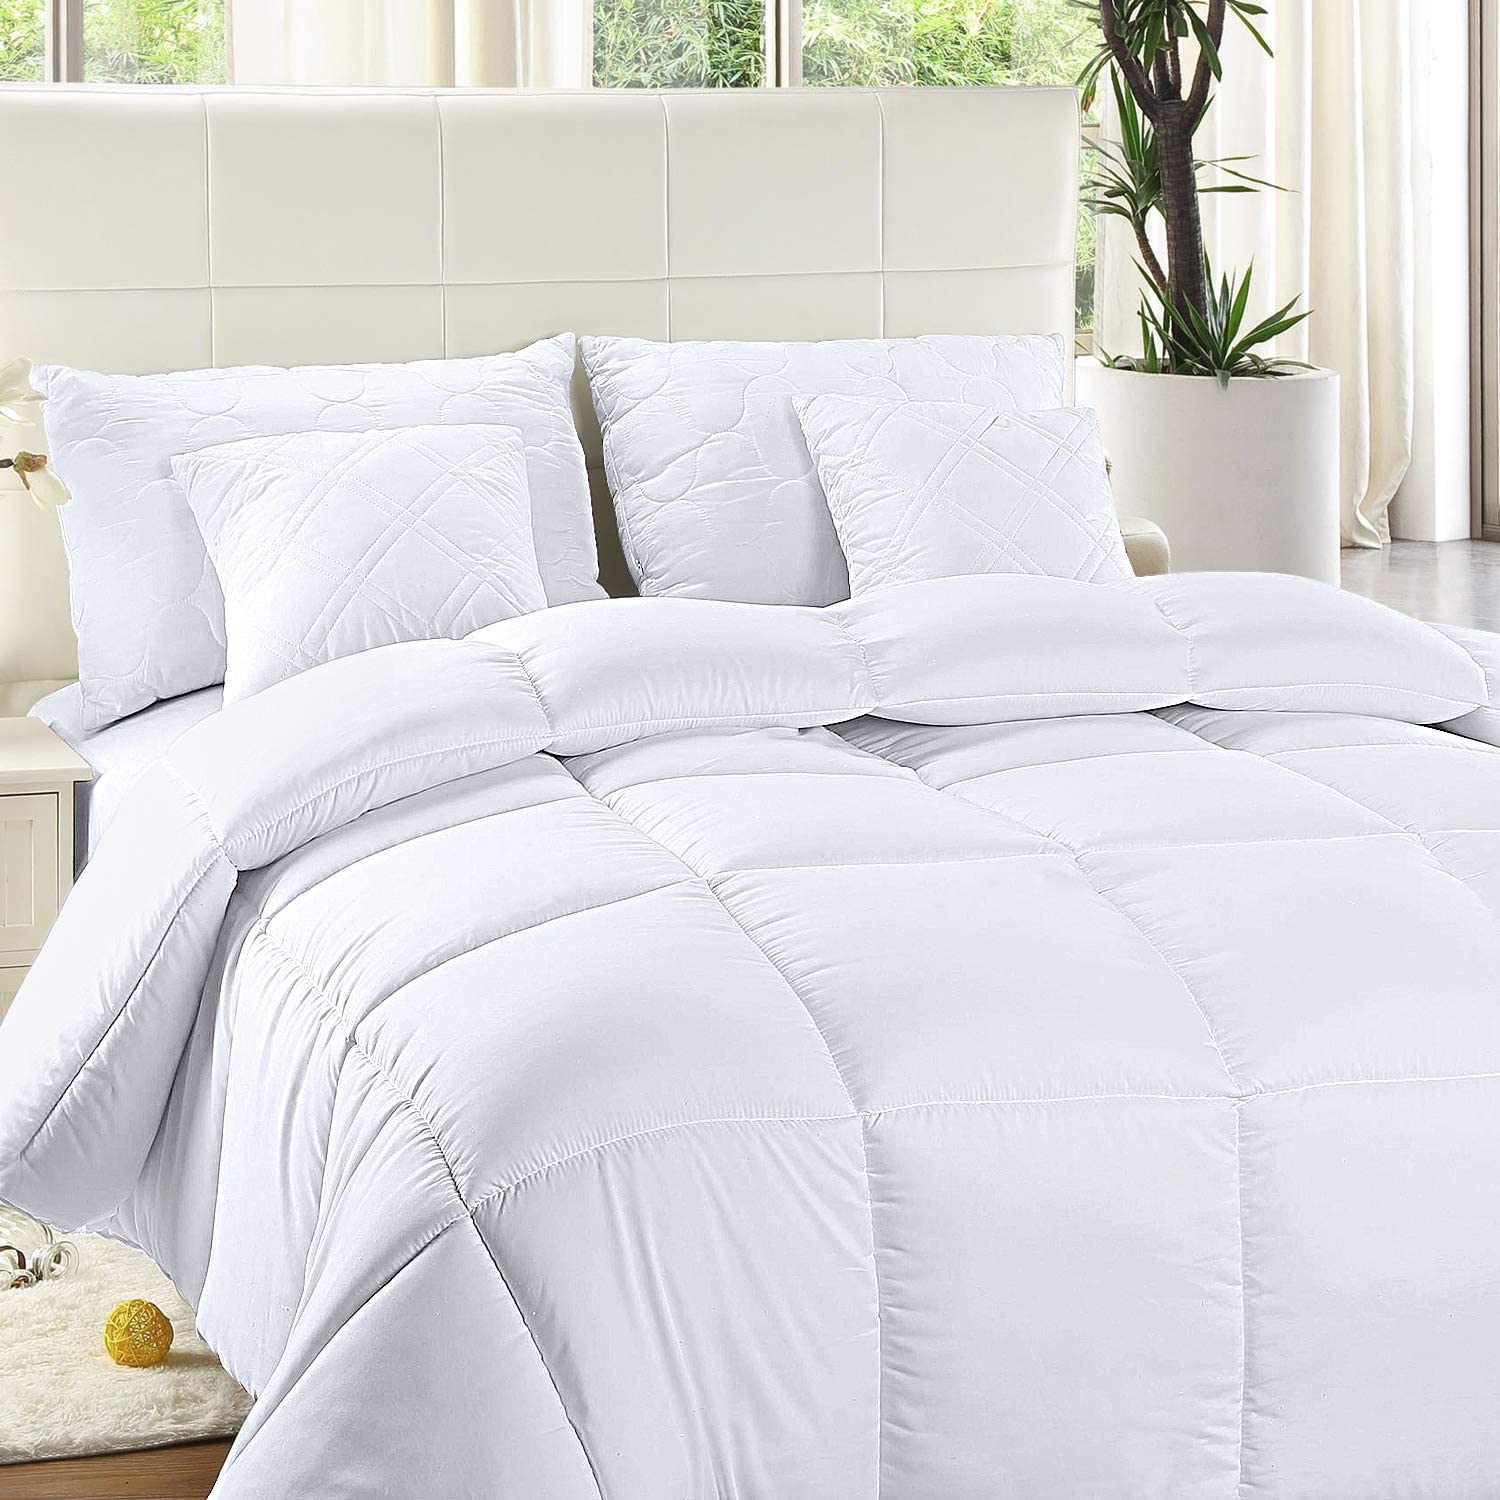 Utopia Bedding Comforter Duvet Insert - Quilted Comforter with Corner Tabs - Box Stitched Down Alternative Comforter (King, White): Home & Kitchen